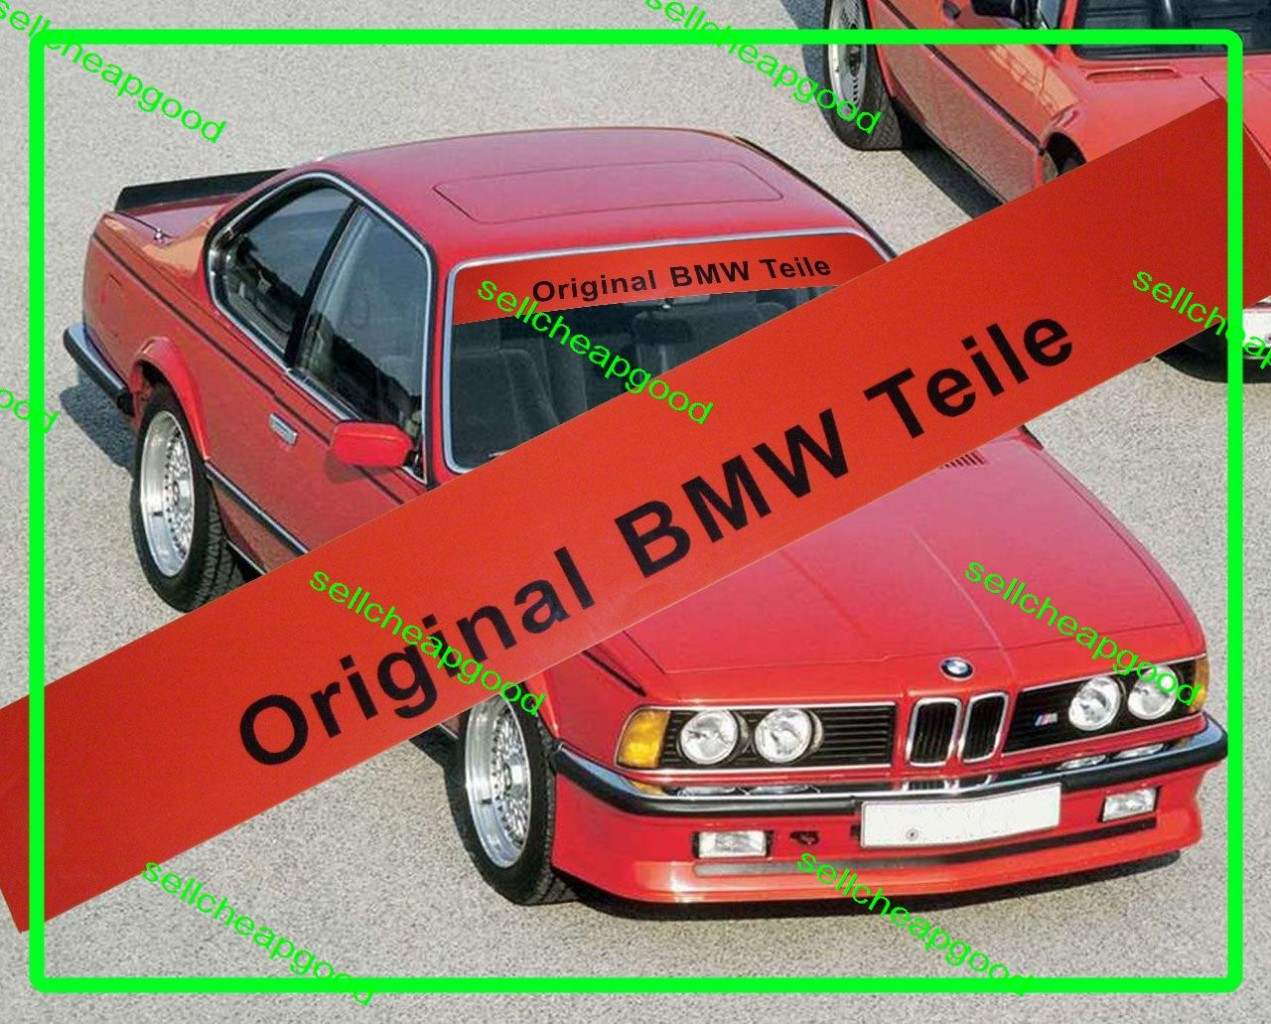 original bmw teile windshield decal m3 e30 dtm e24 m6 m. Black Bedroom Furniture Sets. Home Design Ideas